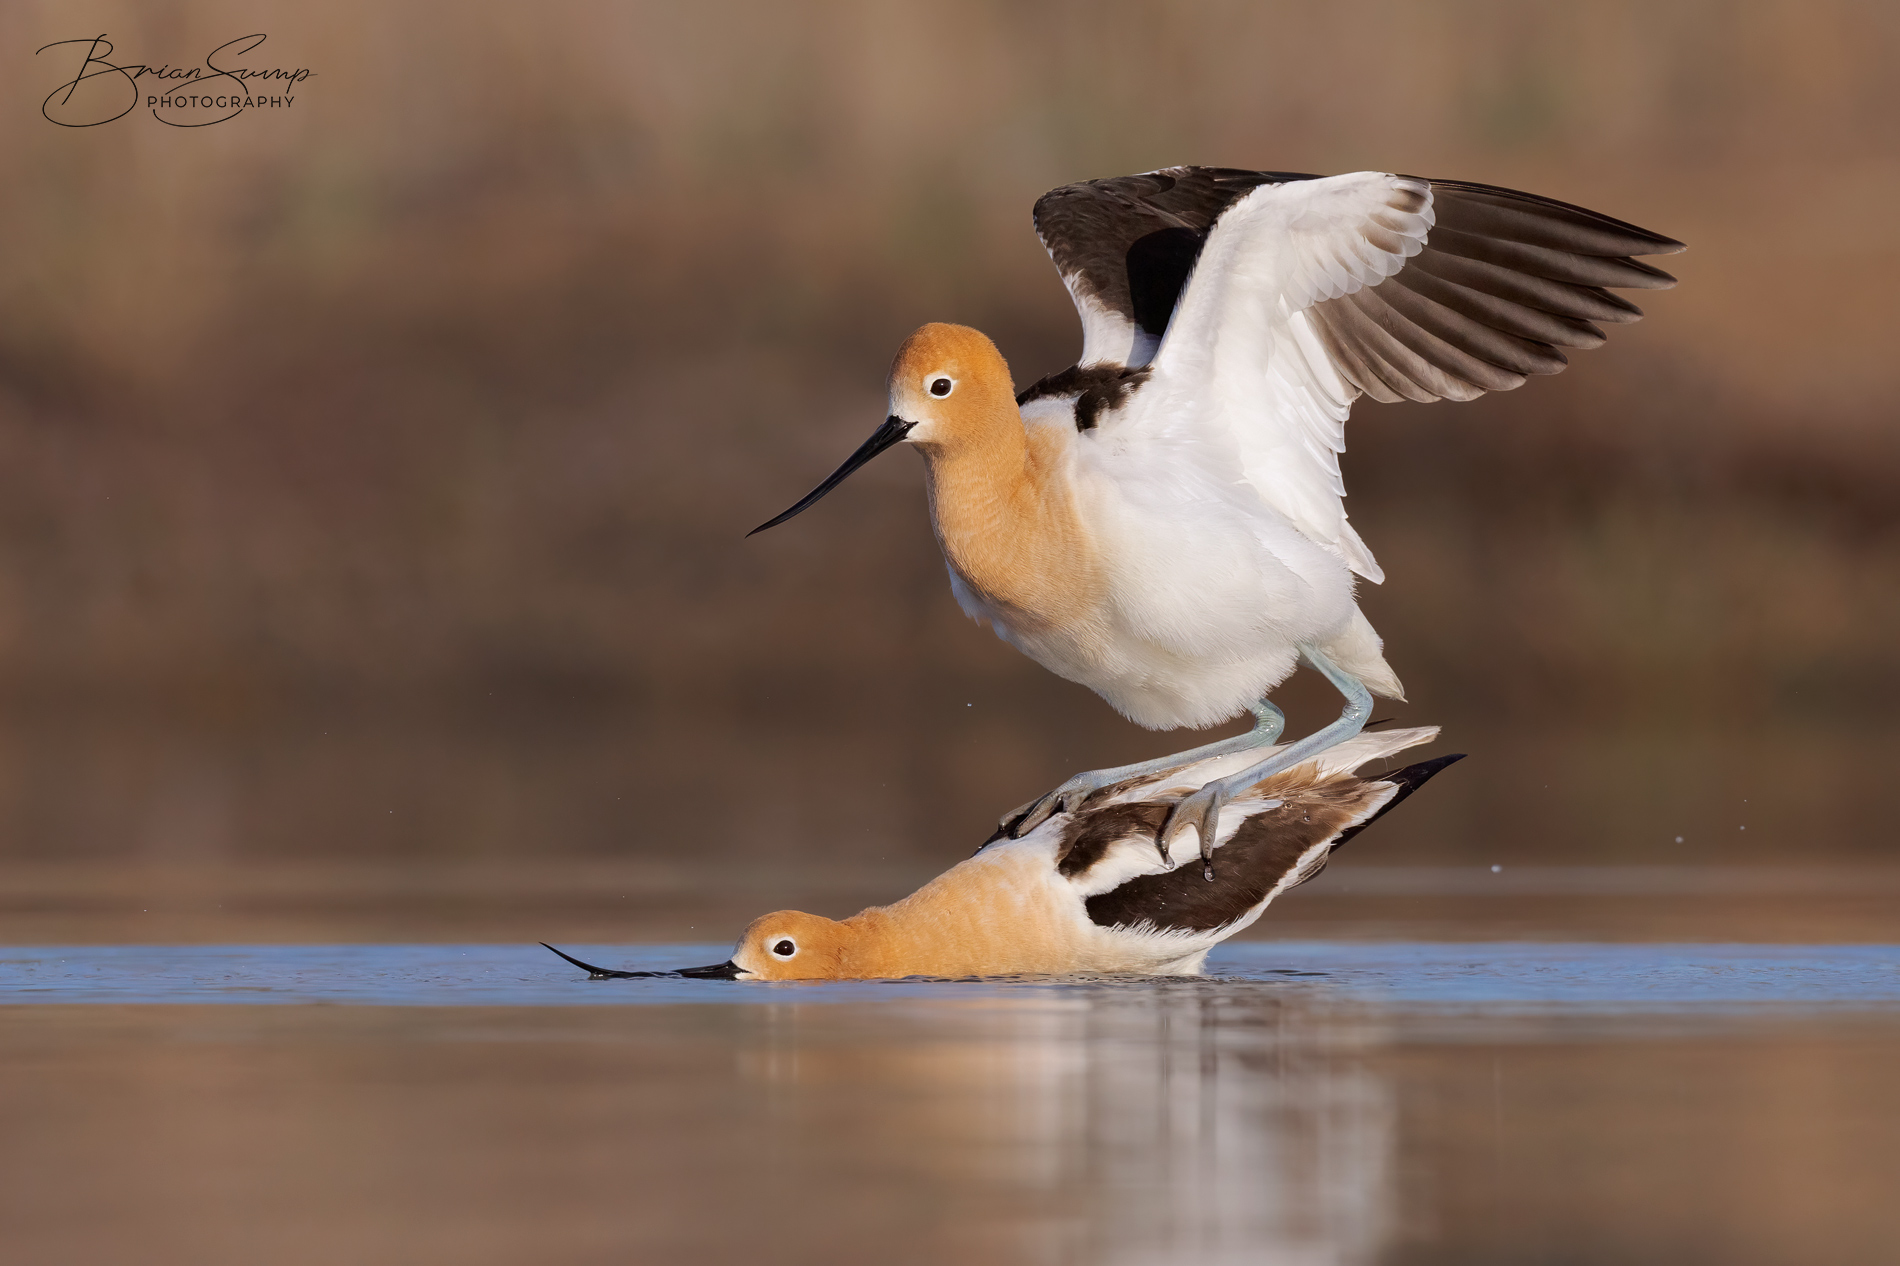 Name:  20210507-Avocets-Mating-2021-Warm-Brian-Sump-BSR50336-4410px-D60-brush-touch-2x3-v4.jpg Views: 148 Size:  588.0 KB